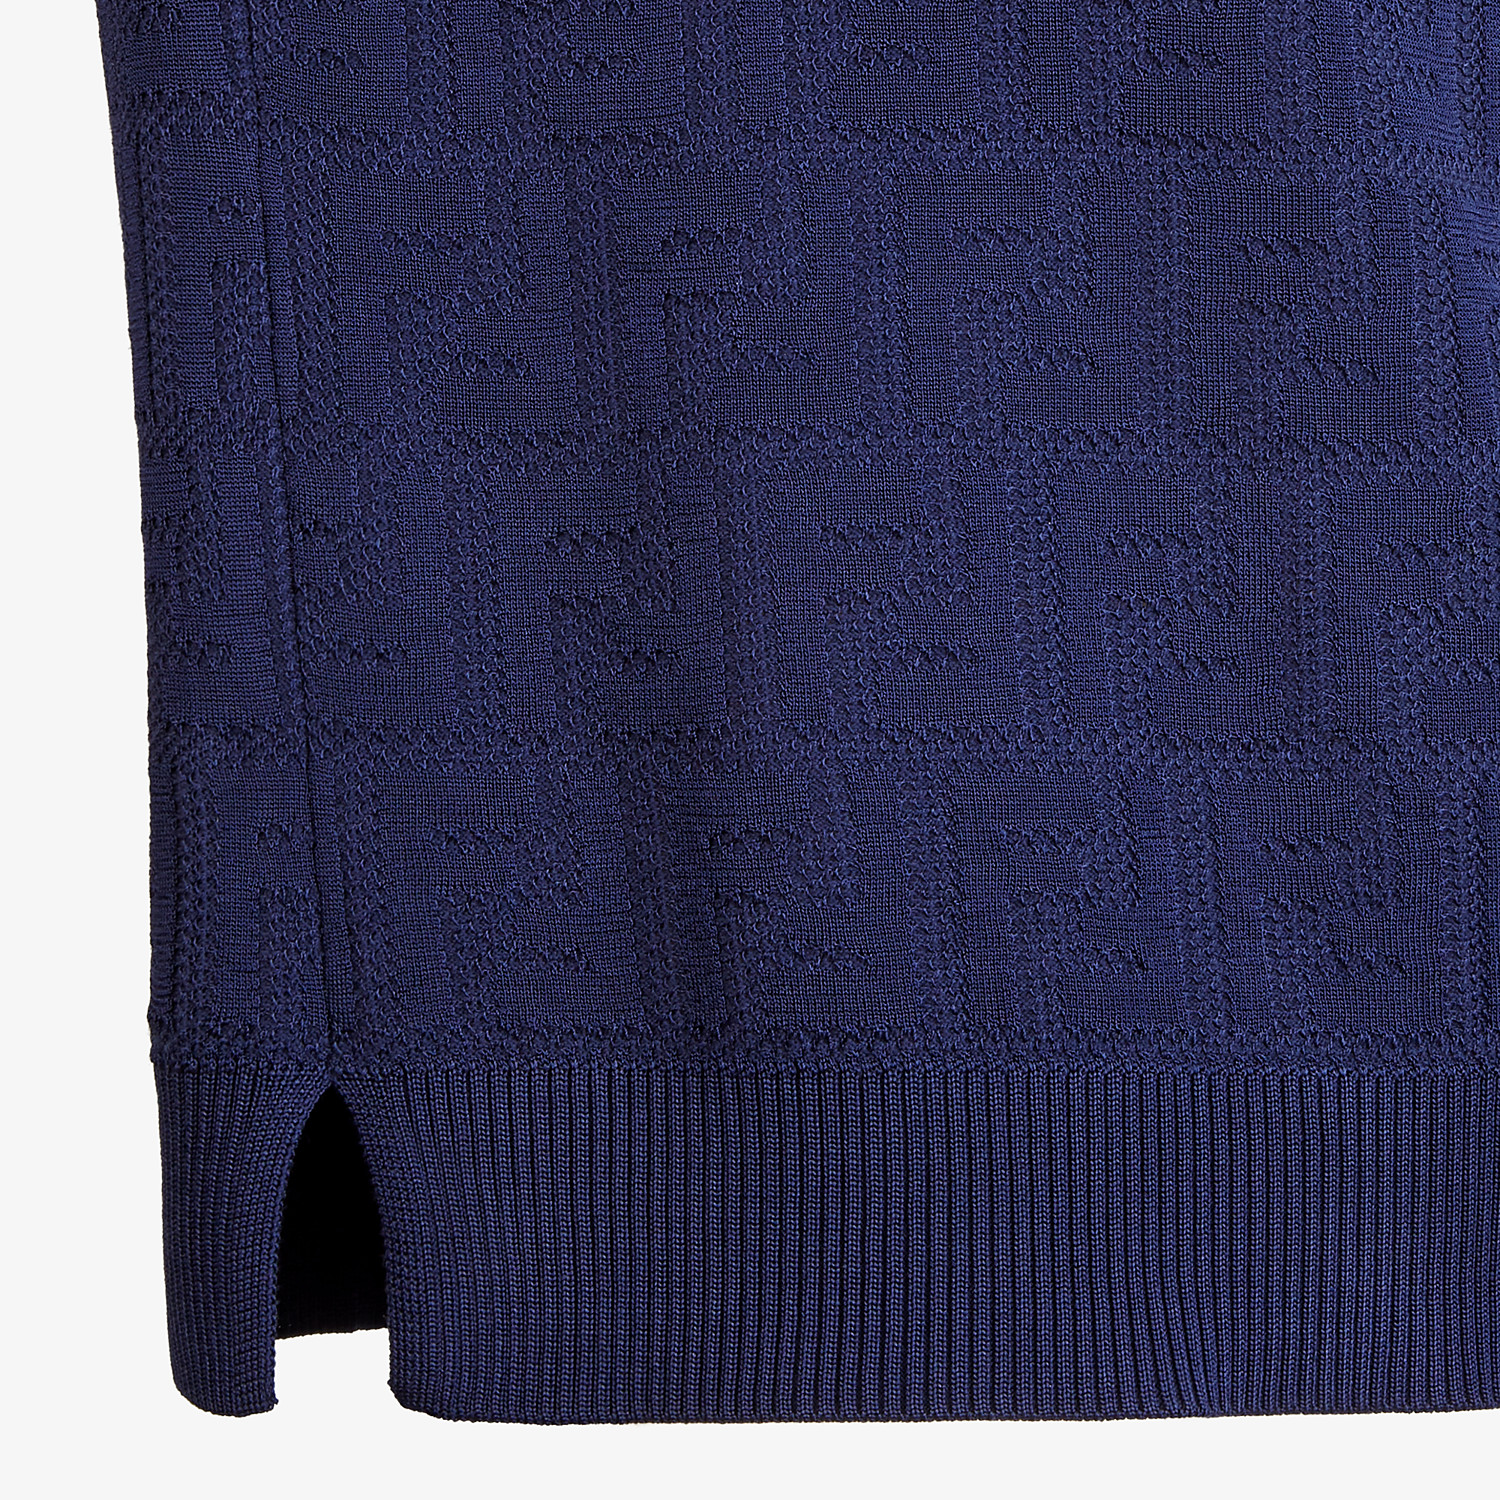 FENDI JUMPER - Blue cotton and viscose jumper - view 3 detail